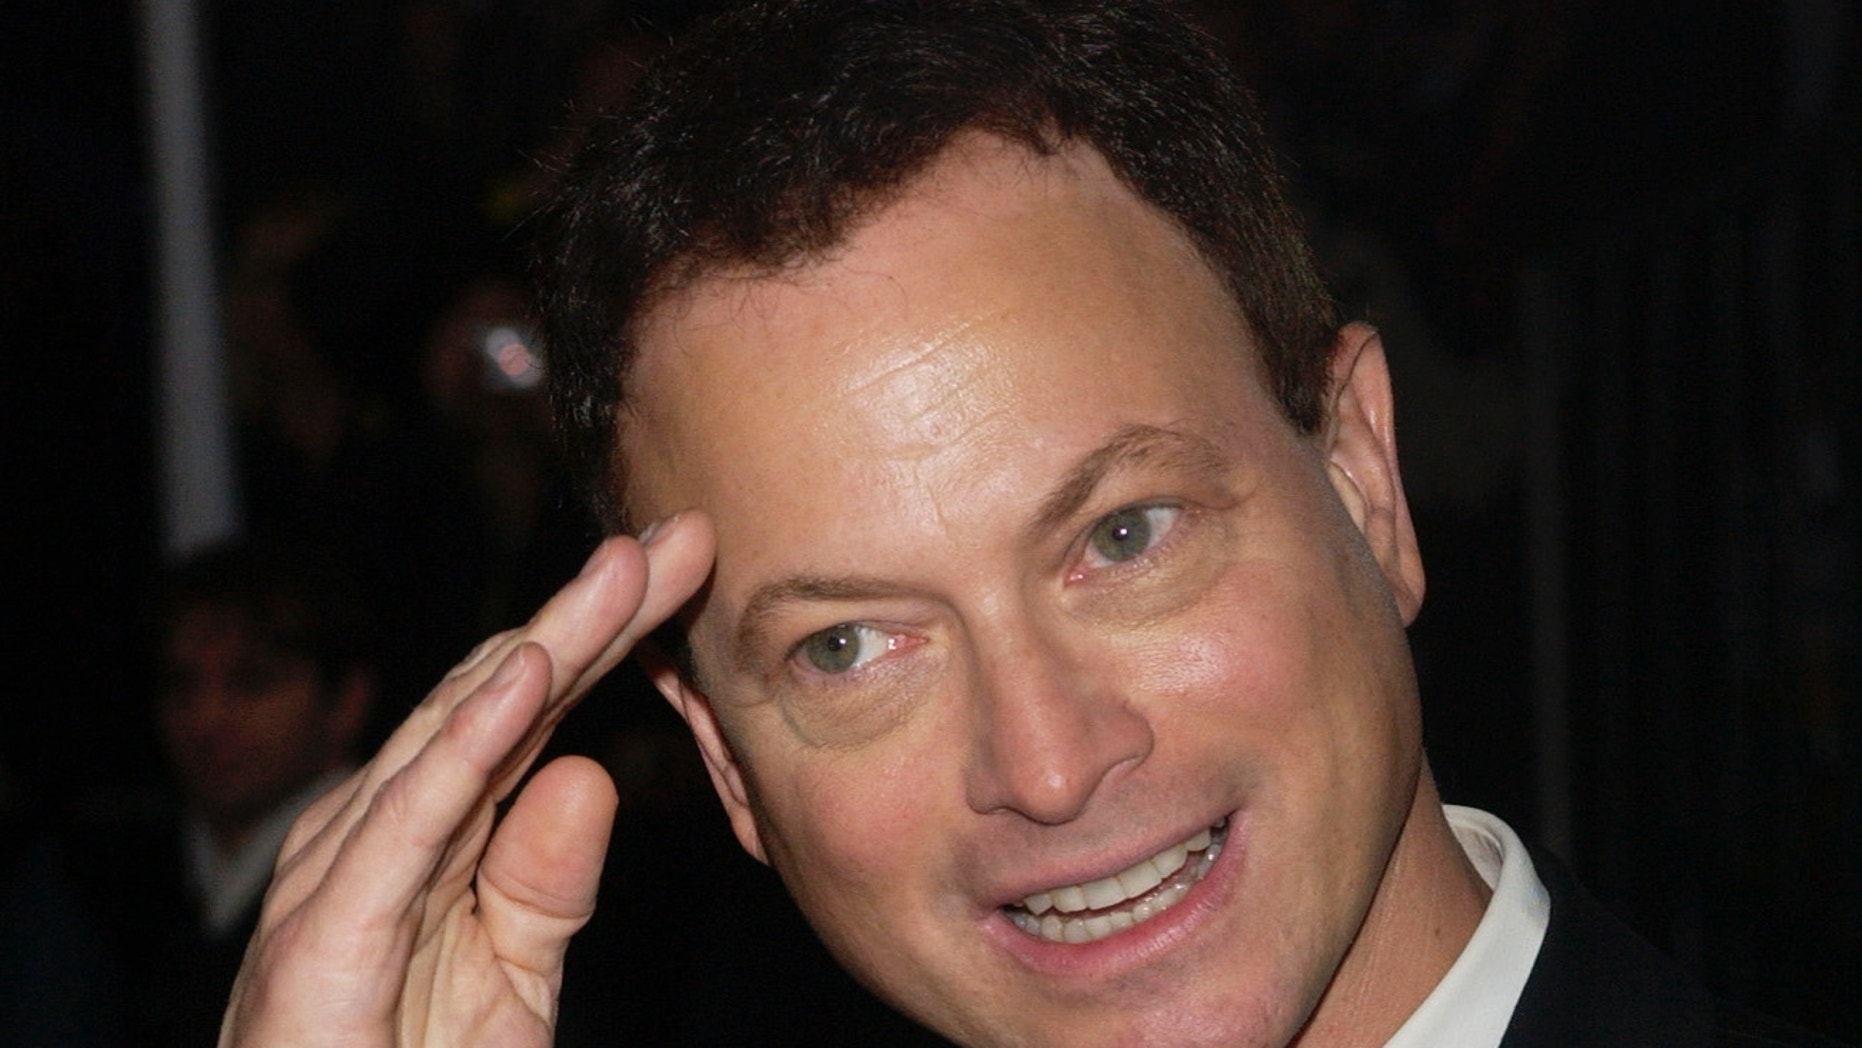 Gary Sinise arrives at the 31st annual People's Choice Awards at the Pasadena Civic Center in Pasadena, California January 9, 2005.